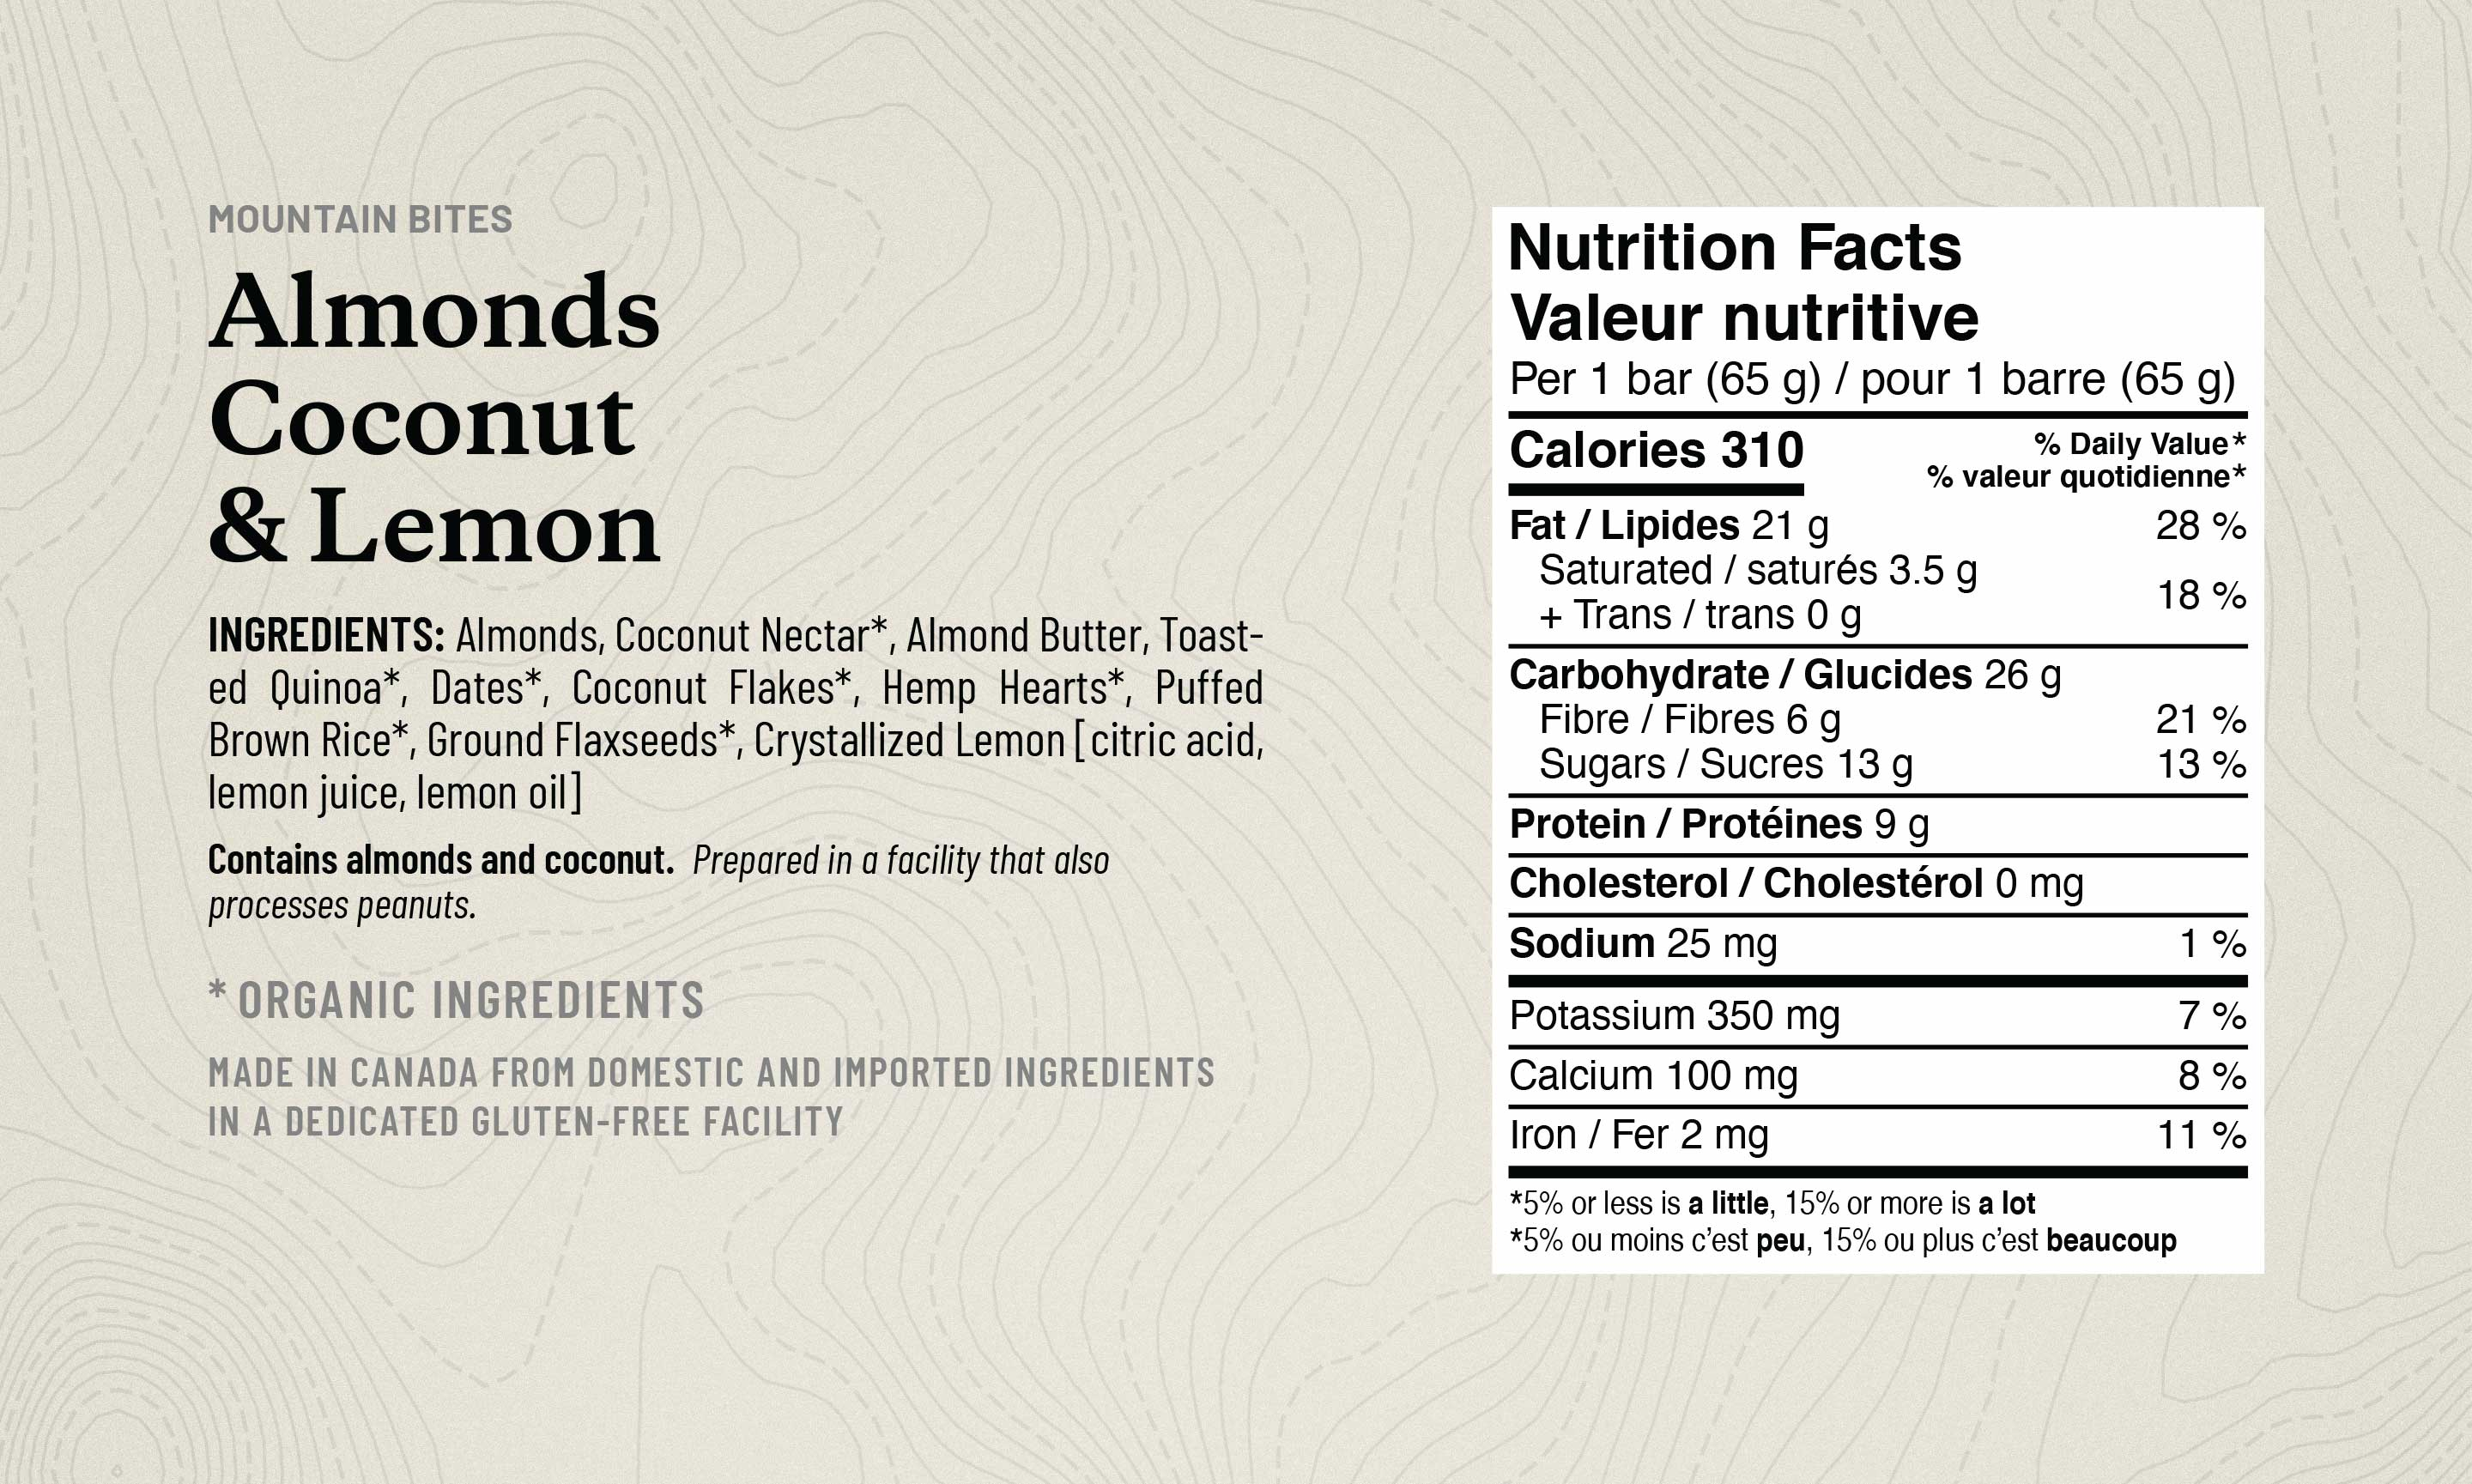 Image of Almond Coconut and Lemon Ingredient List, noting Organic Ingredients and Nutrition Table